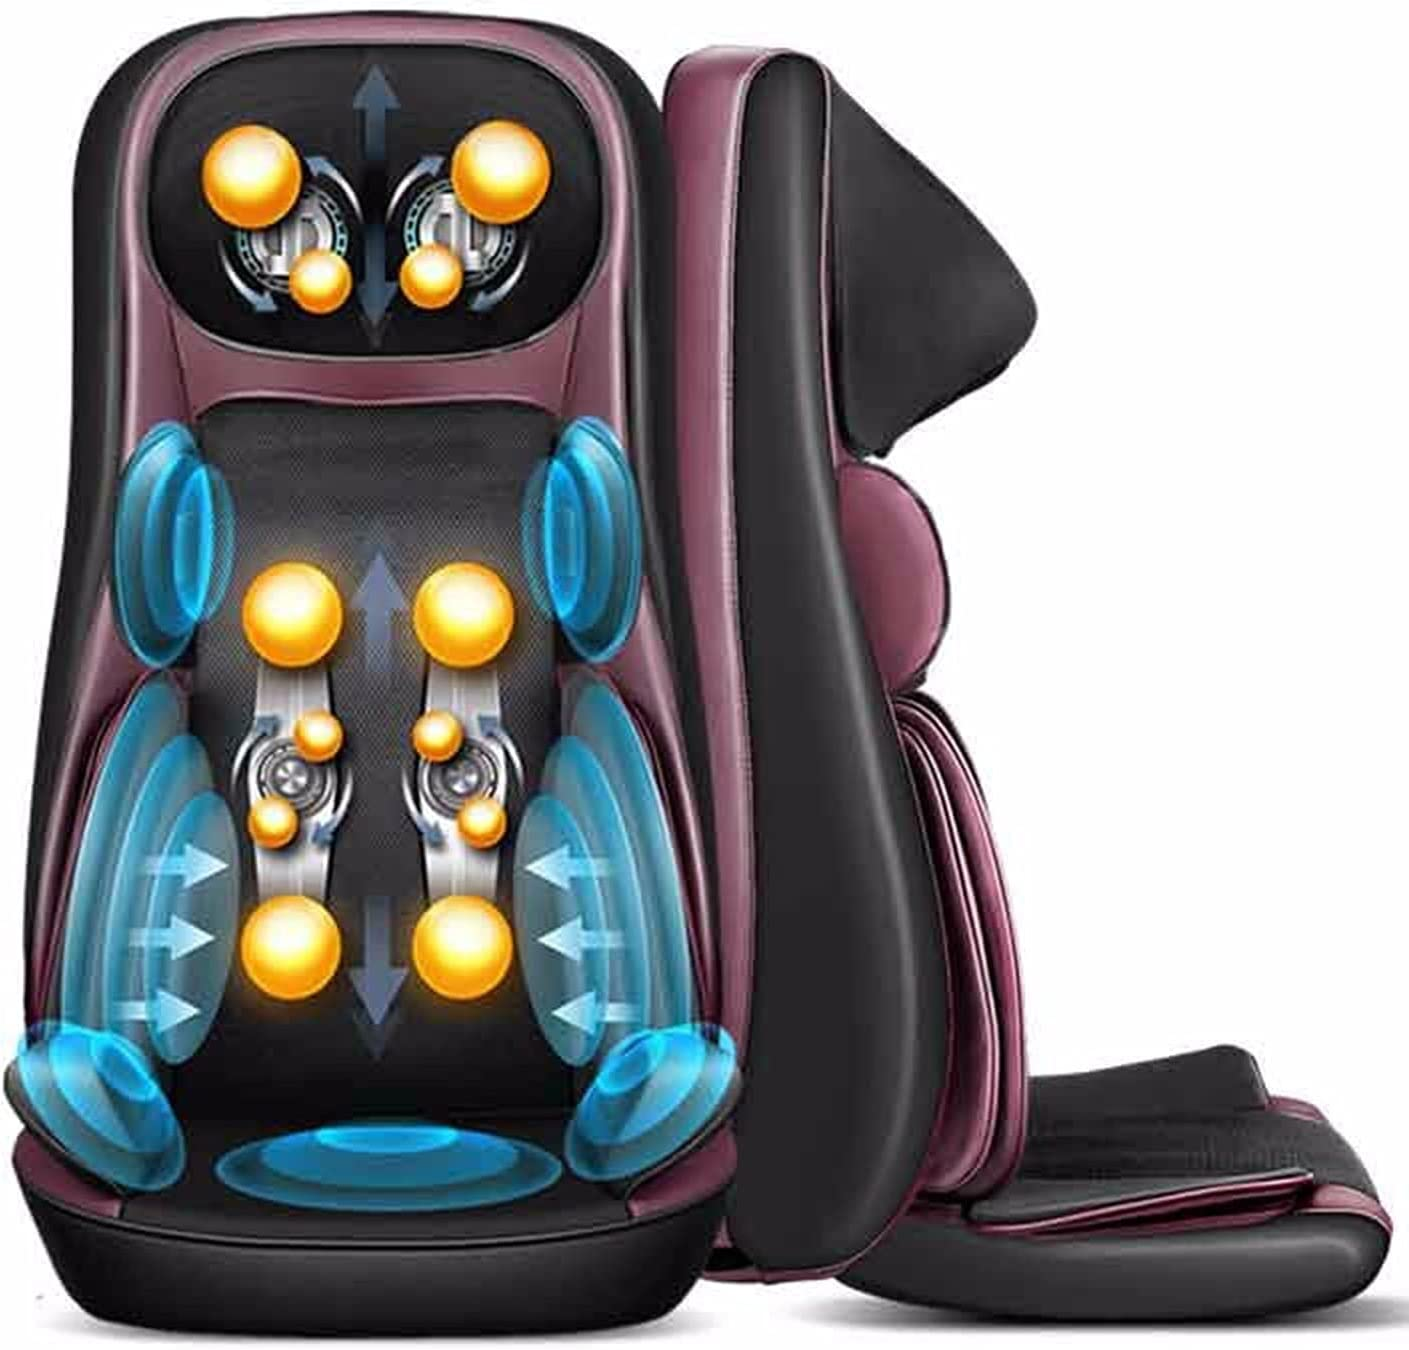 Fly YUTING Shiatsu Back Massager with Vibrating Chair Pad Heat Super intense SALE Credence